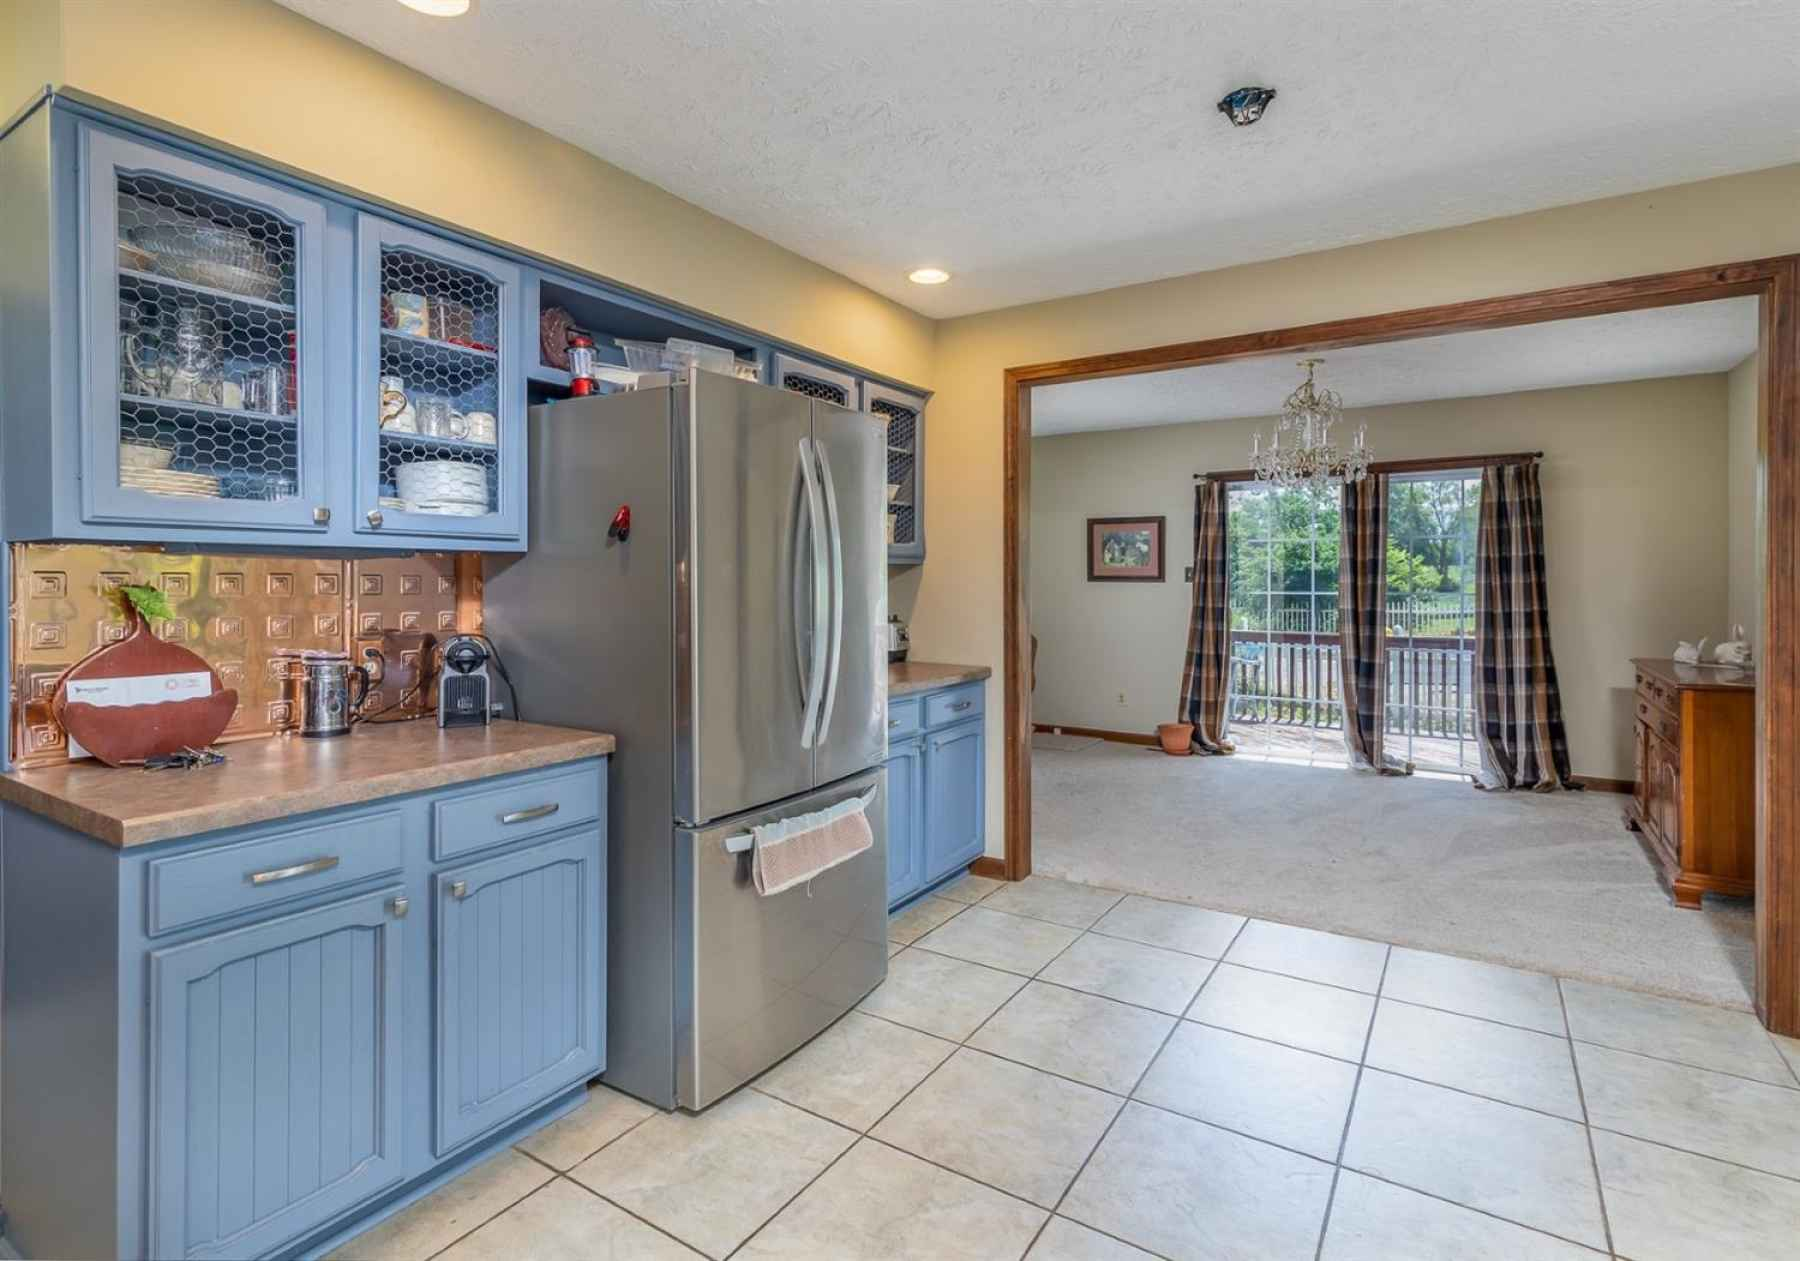 The kitchen opens up to the formal dining room/living room combo. The perfect place to sit back and enjoy those views!